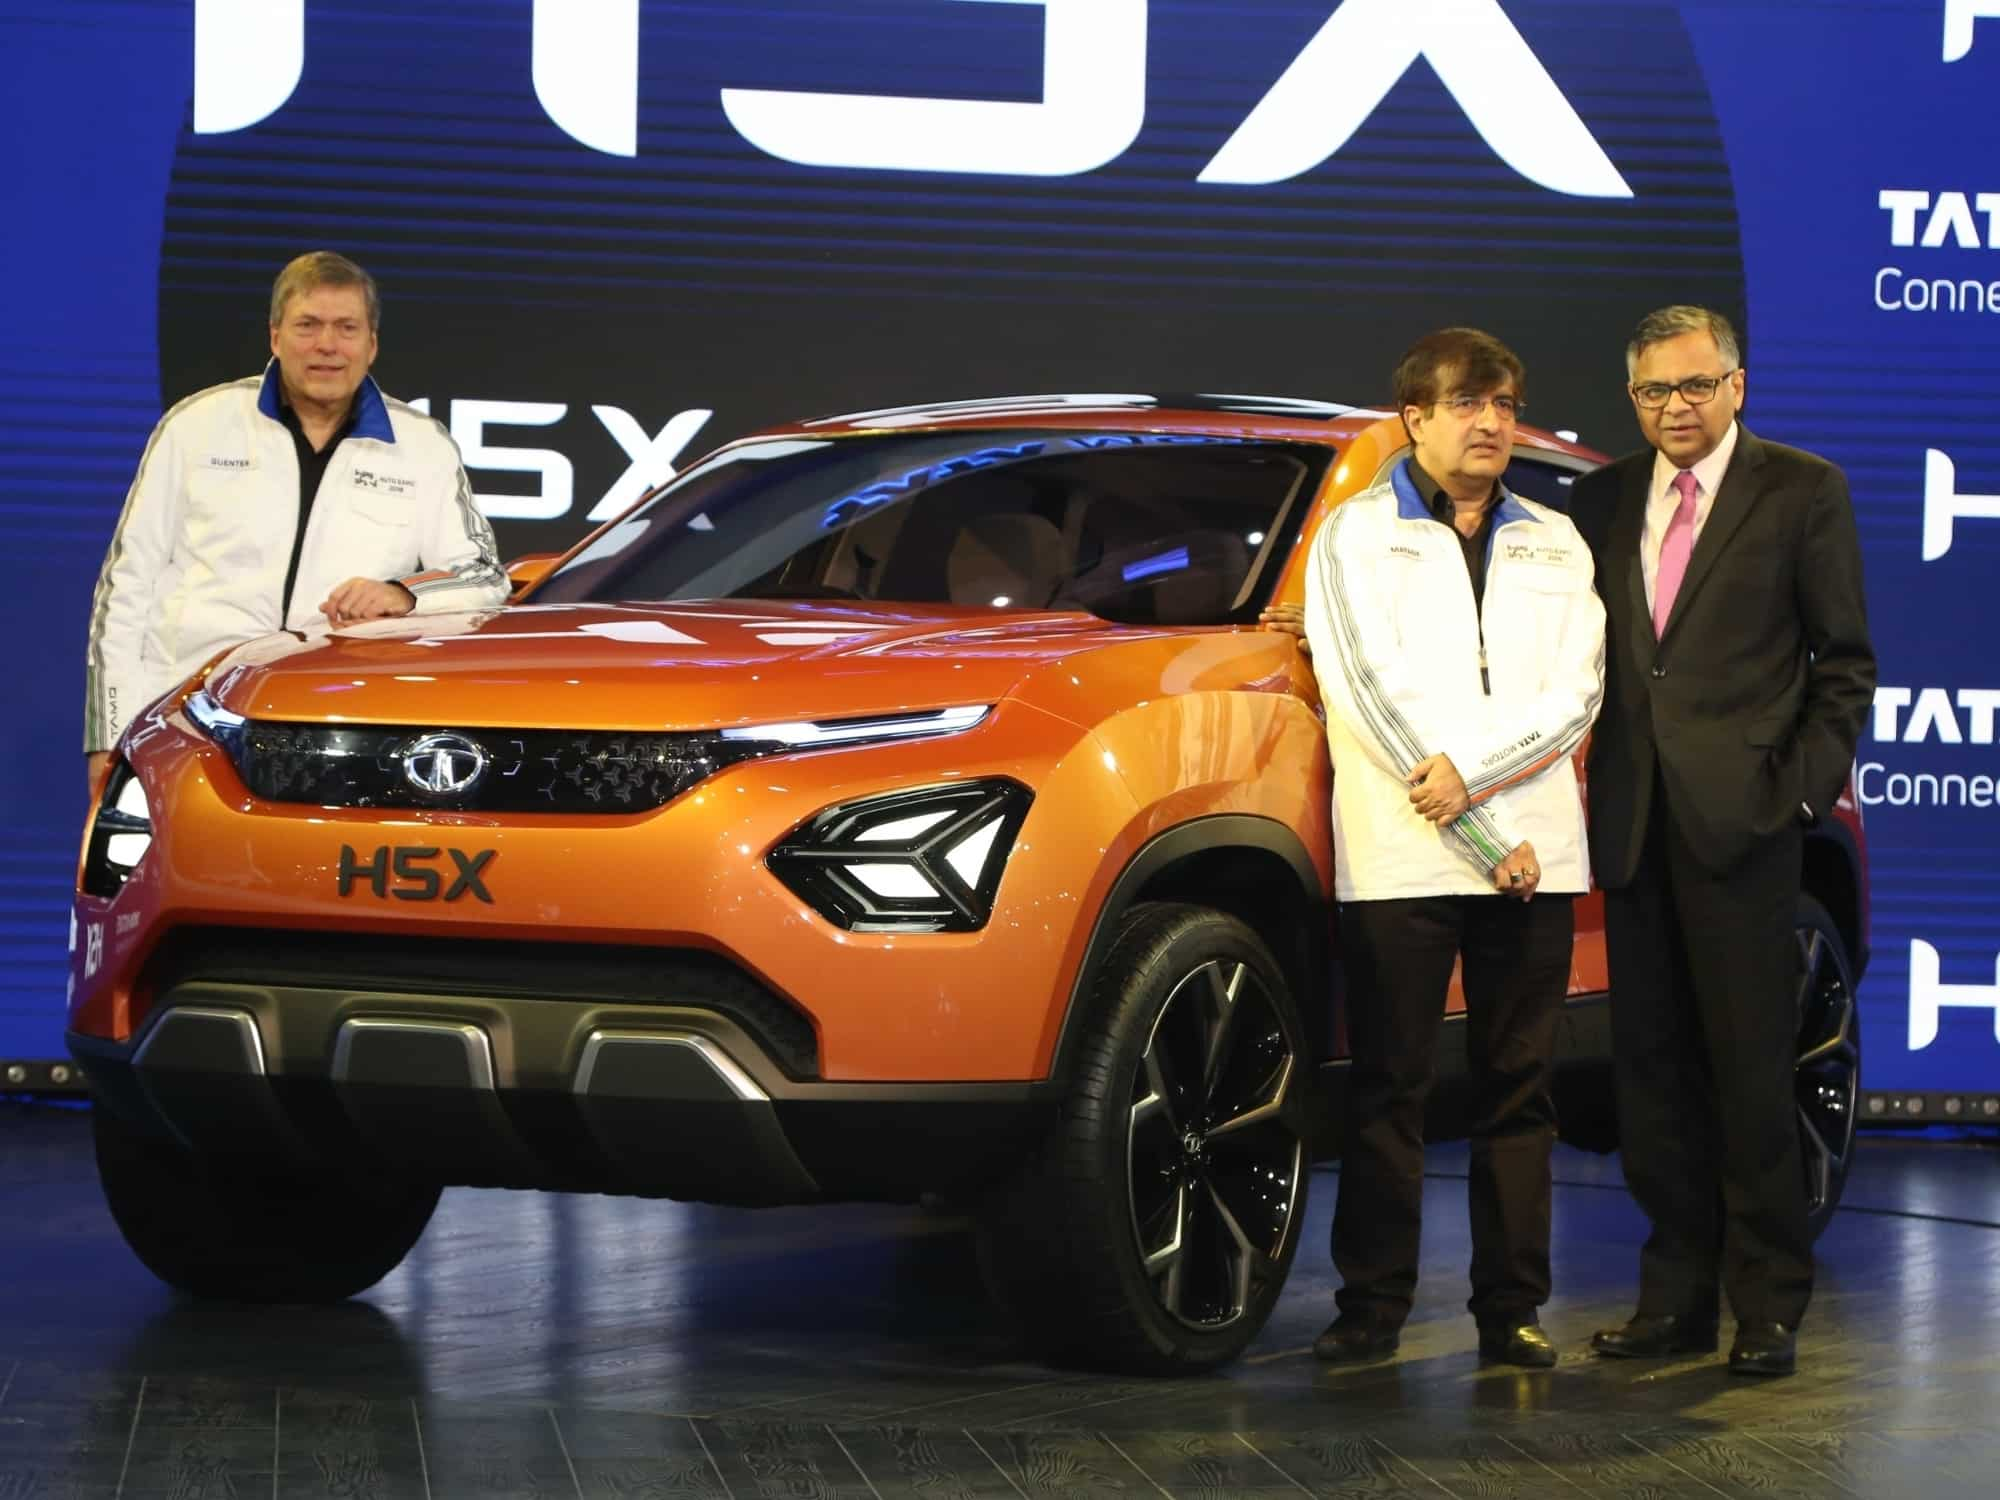 A view of the Tata HSX at the Auto Expo 2018. Image Source: IANS